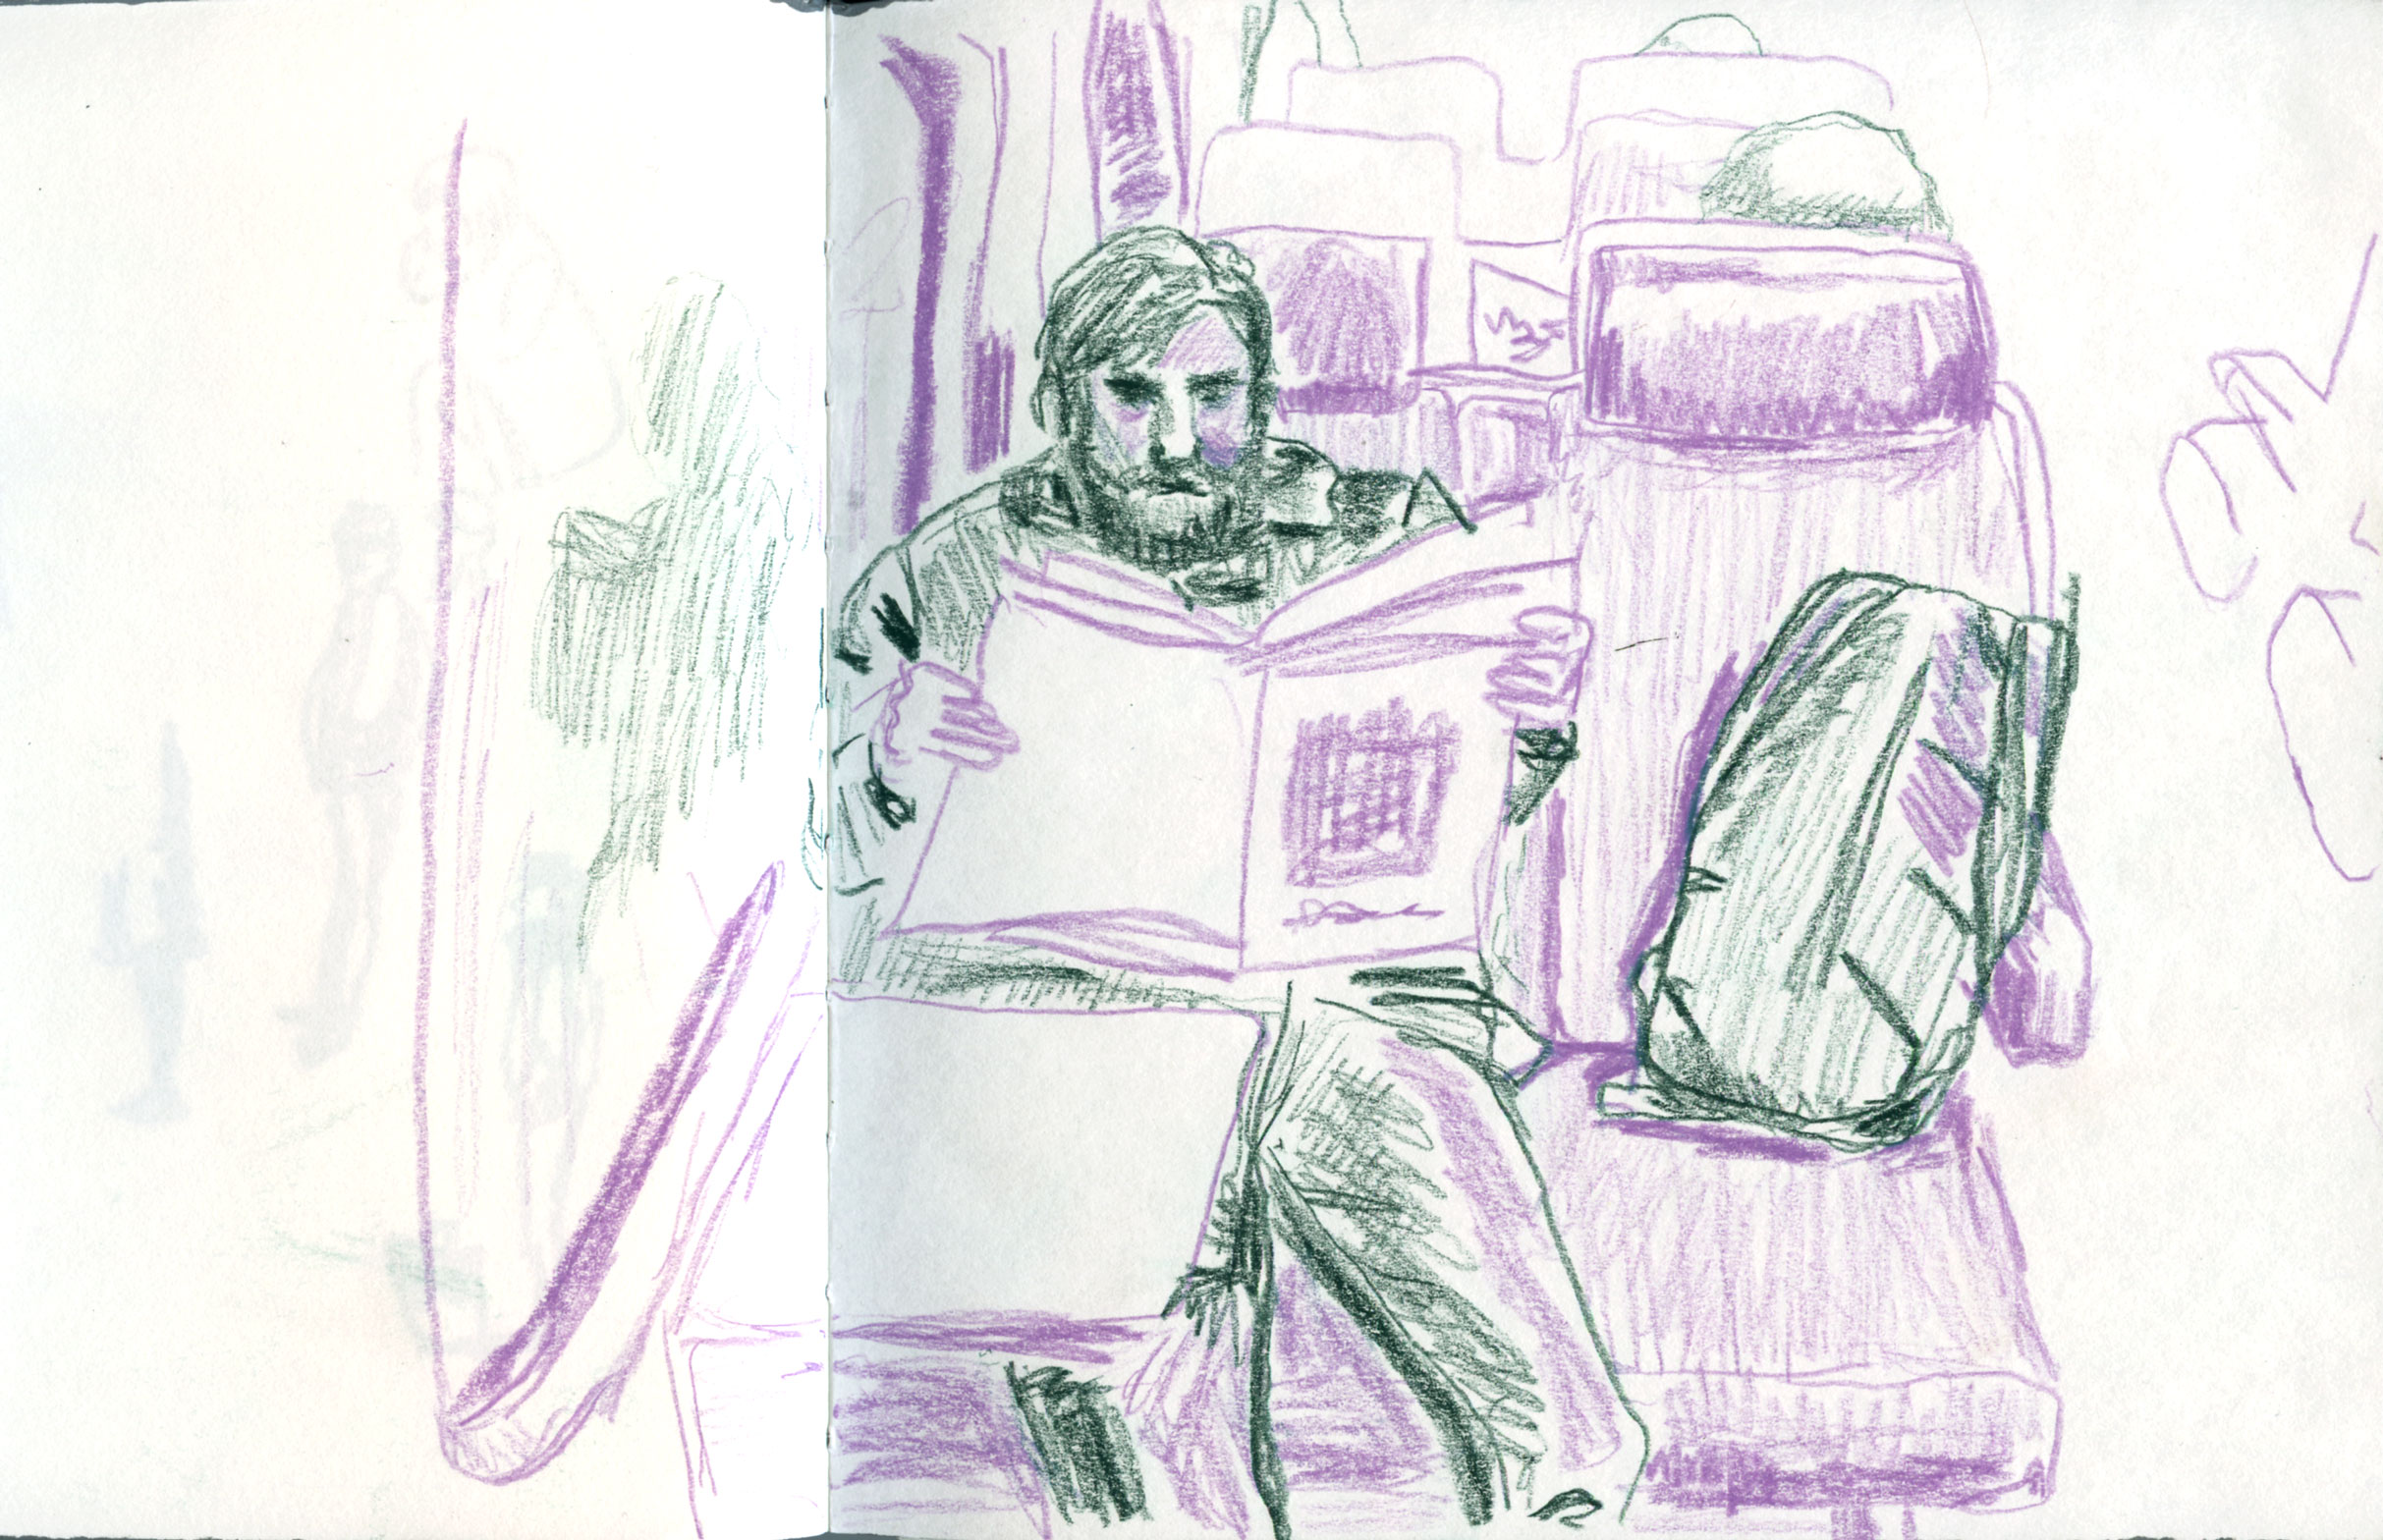 early sketch man reading paper on train